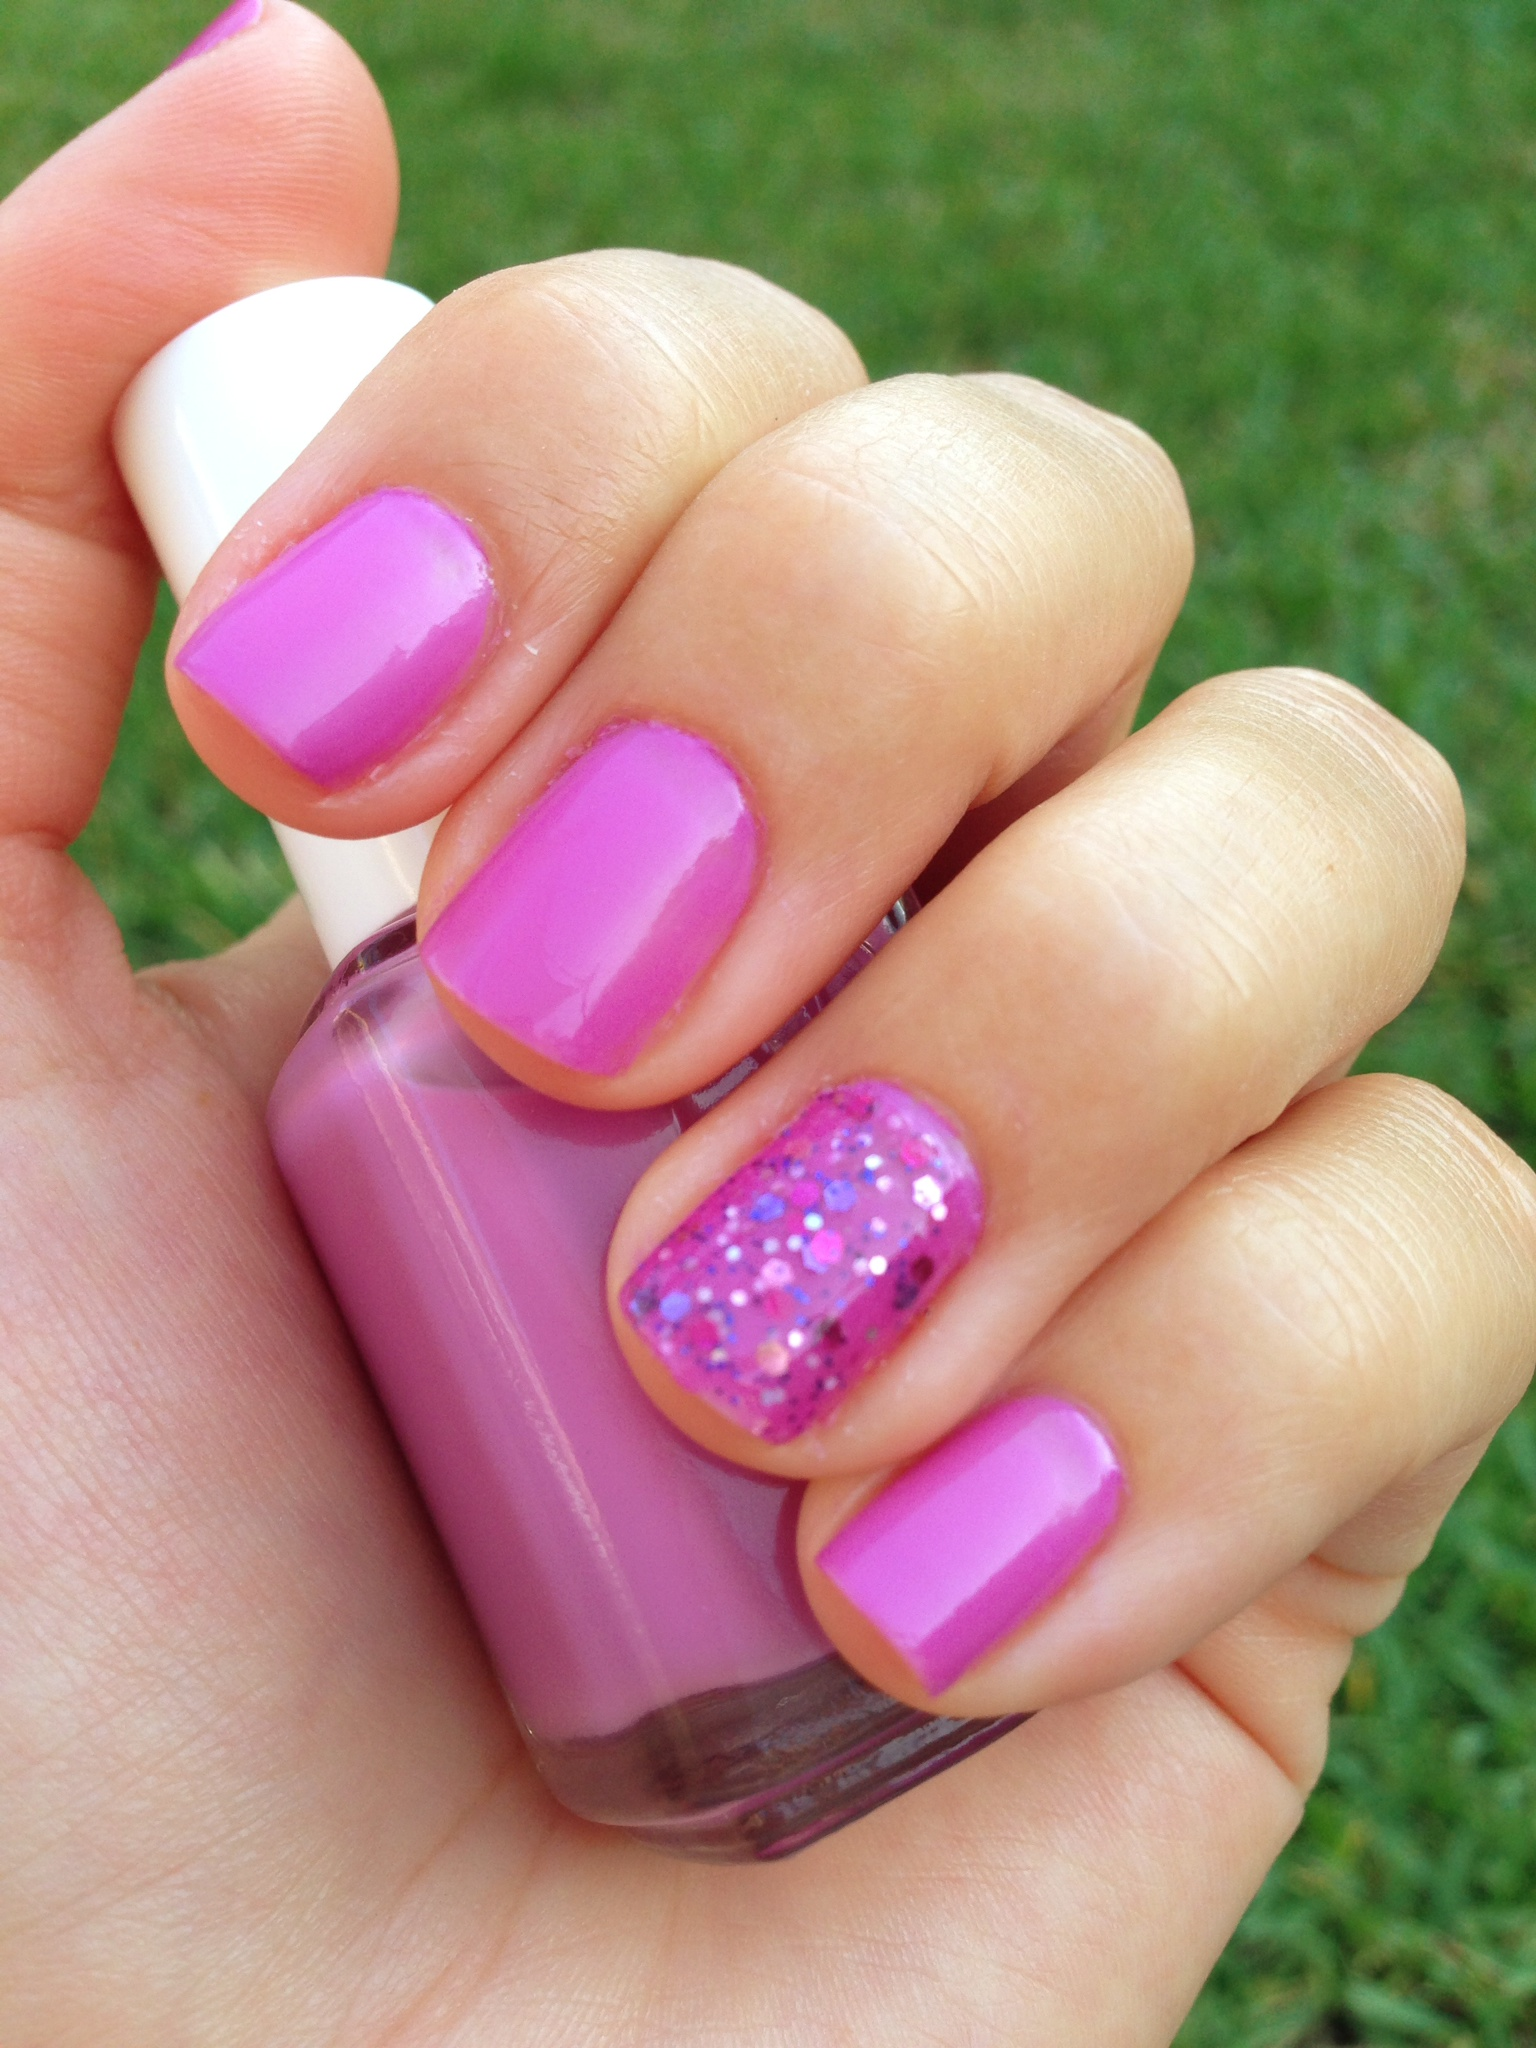 Nail art color violet - I Hope You Guys Enjoy This Week S Colors And Nail Art Idea Let Me Know What You Think Of This Color Combo And Share Your Nail Photos With Me